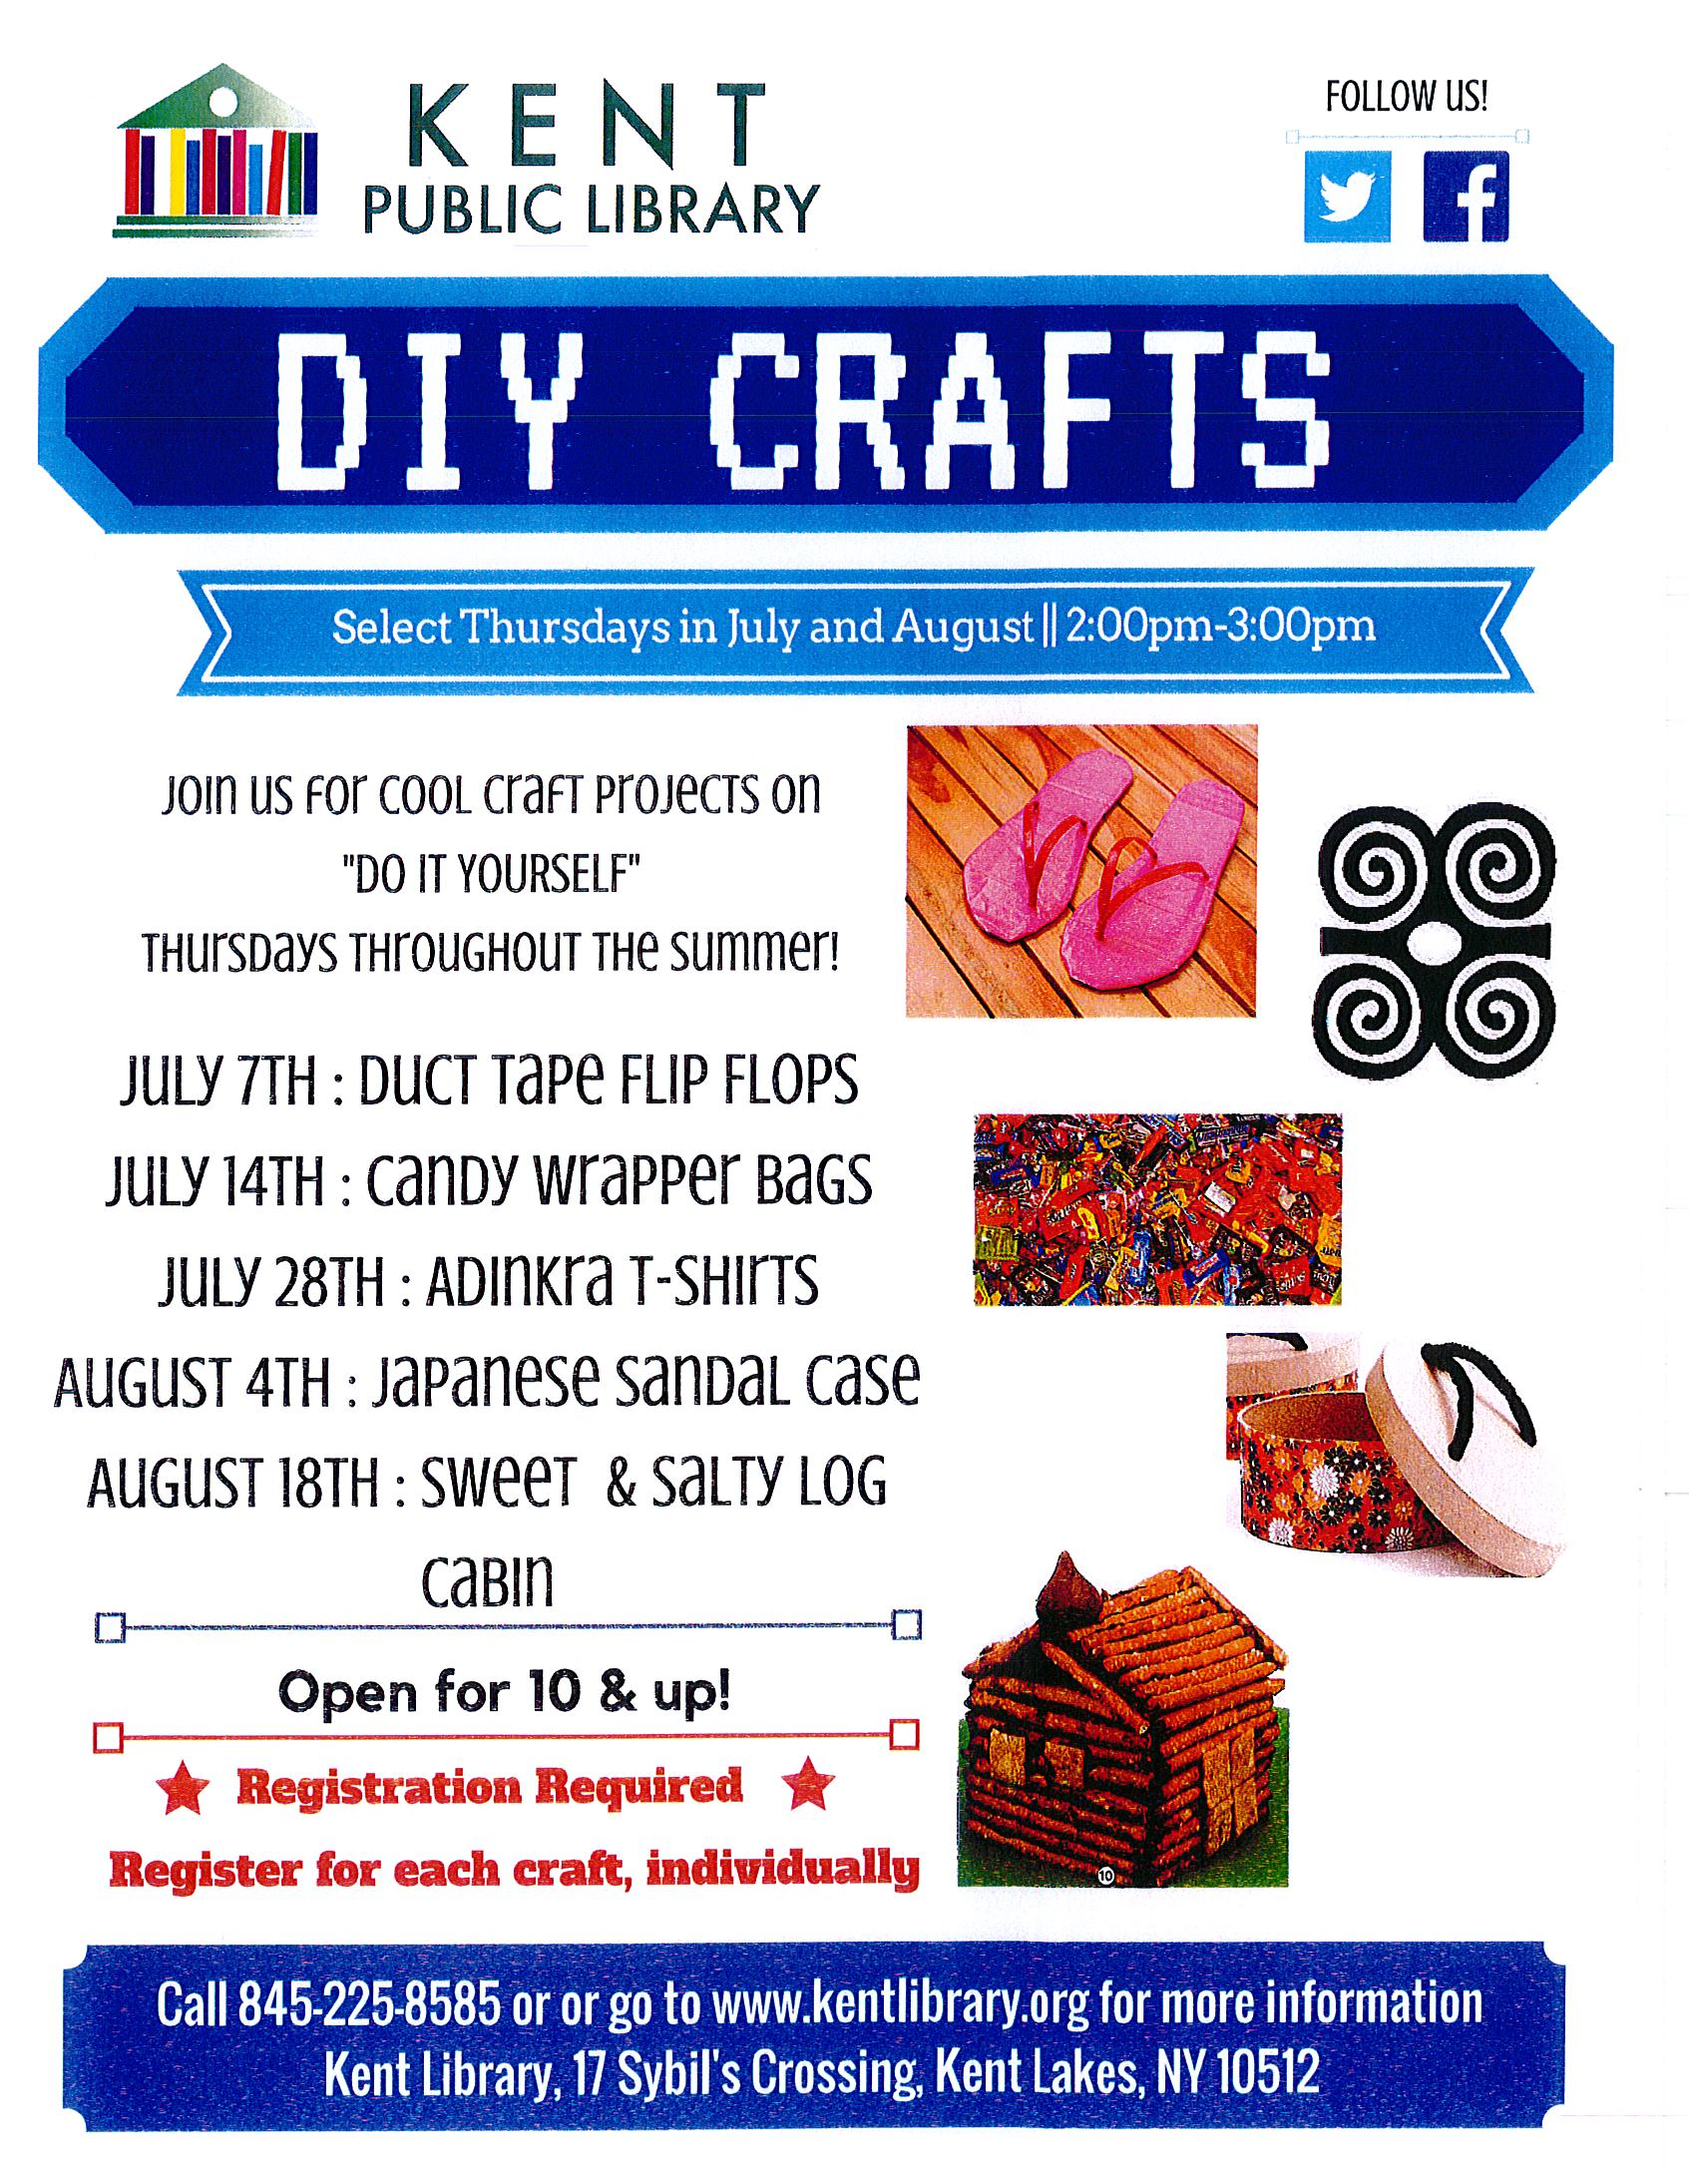 Do it yourself crafts on thursdays for ages 10 throughout the summer the kent public library will be holding diy do it yourself crafts get in touch with your creative side on select thursdays in july solutioingenieria Choice Image